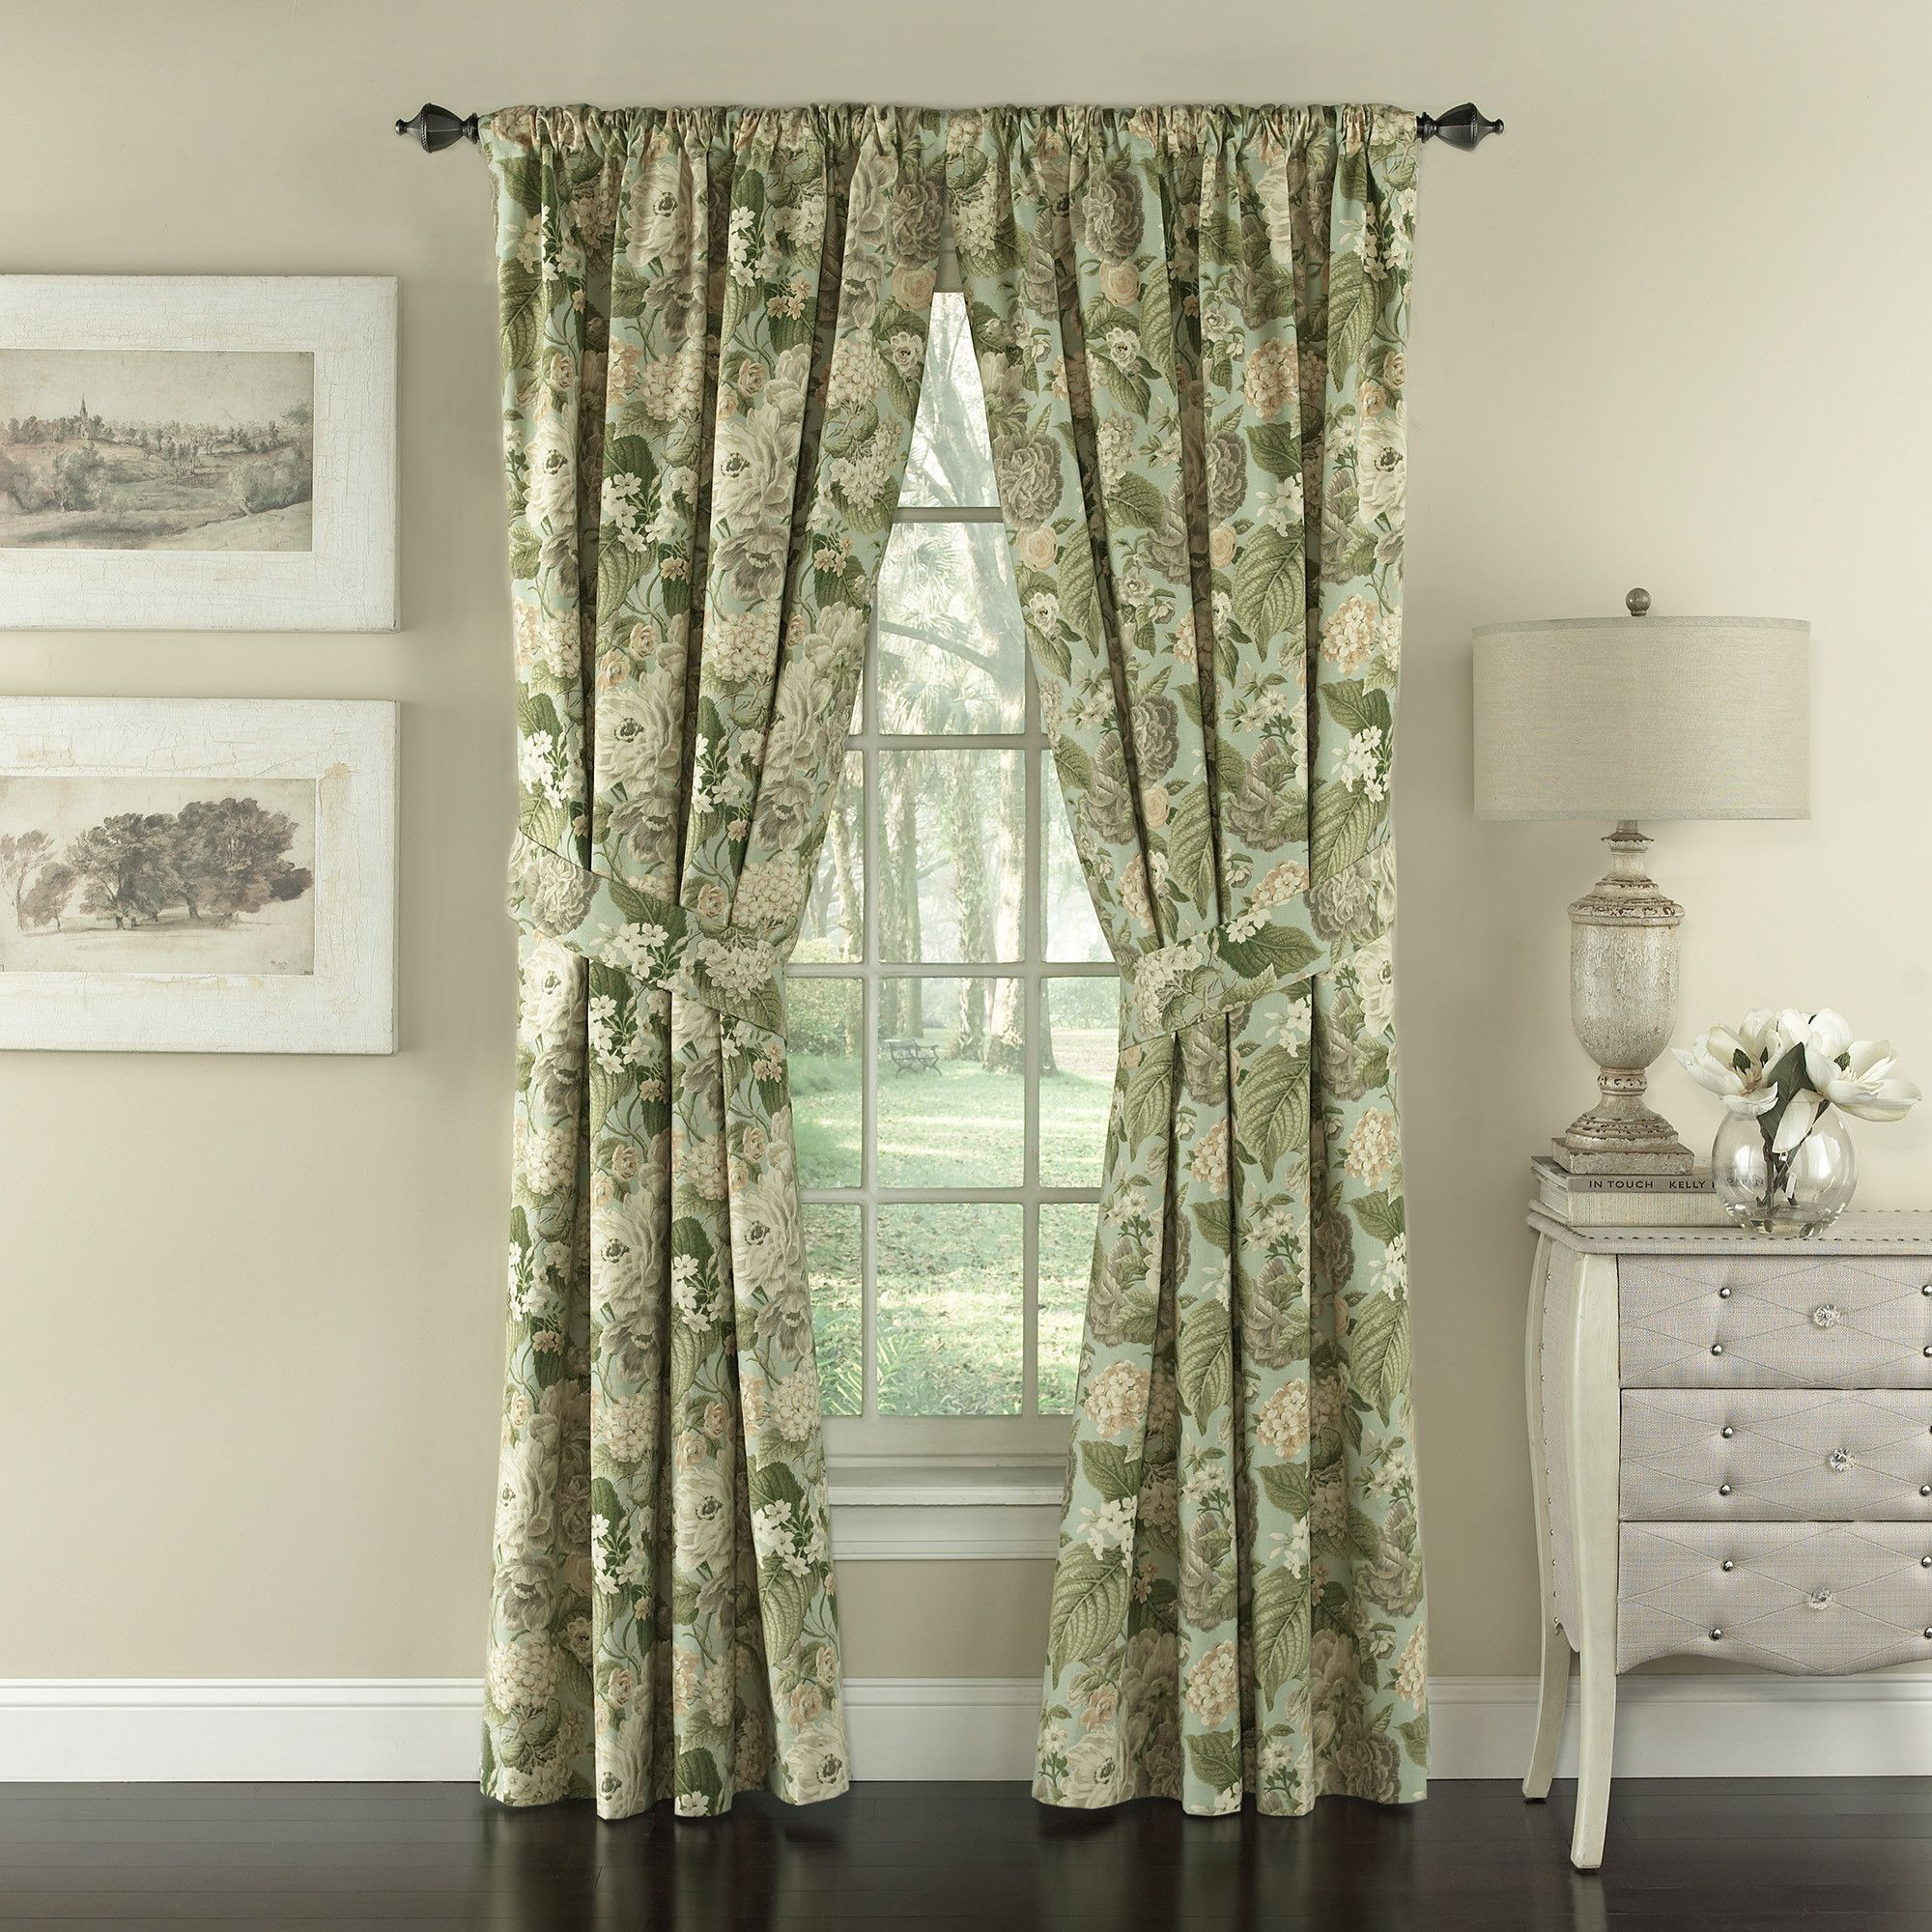 Garden Glory Nature/floral Semi Sheer Rod Pocket Curtain Regarding Andorra Watercolor Floral Textured Sheer Single Curtain Panels (Image 5 of 20)